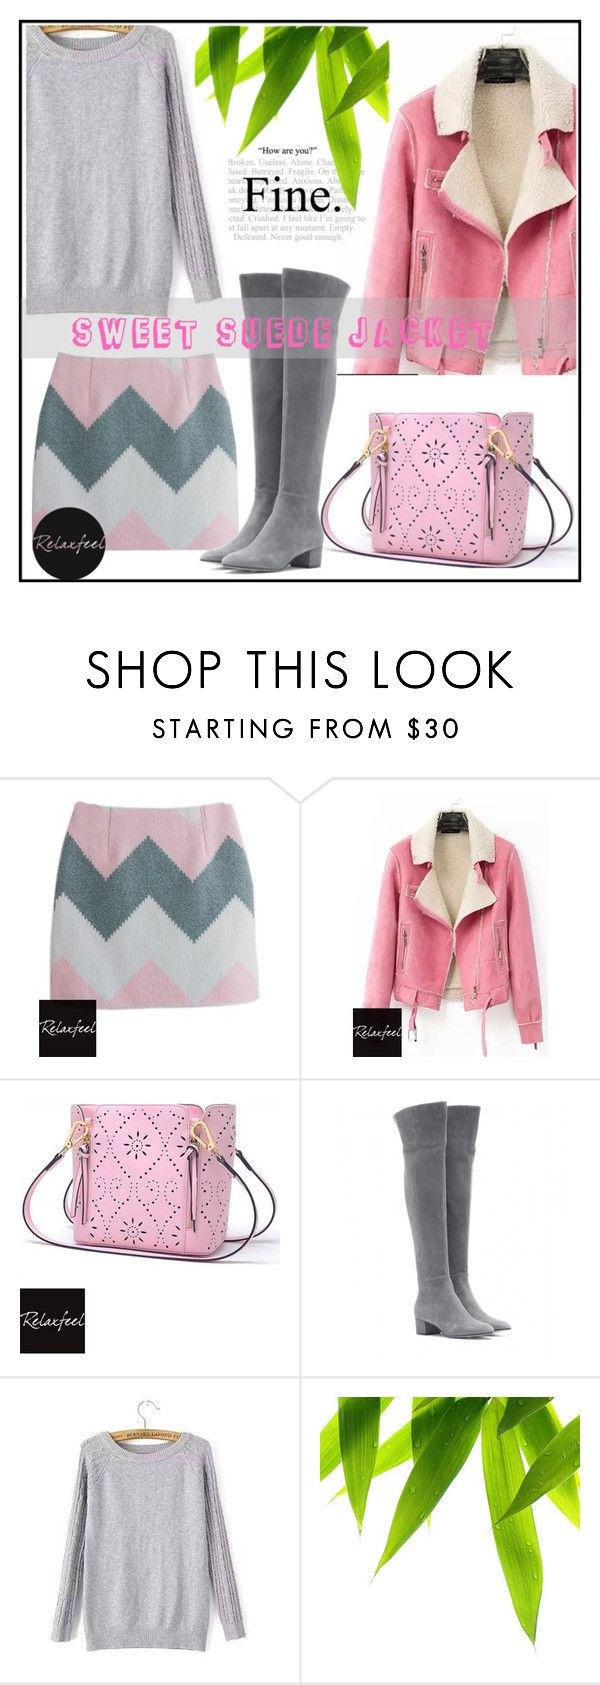 """""""RELAXFEEL 3."""" by allanaaa11 ❤ liked on Polyvore featuring Gianvito Rossi and Relaxfeel"""